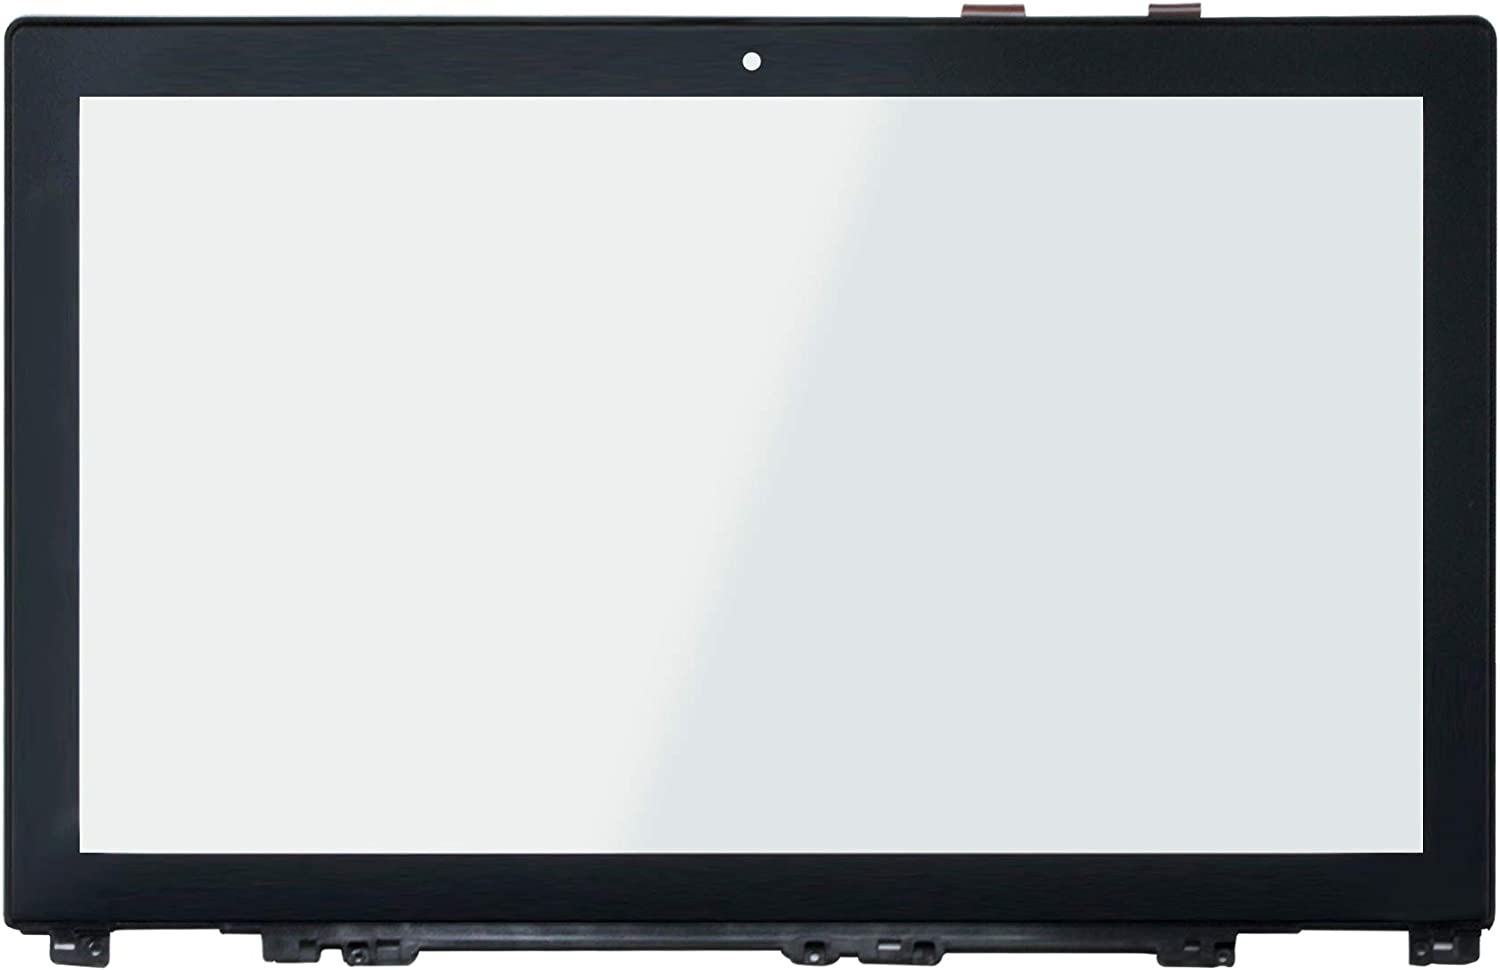 LCDOLED Replacement 15.6 inches Touch Screen Digitizer Front Glass Panel with Bezel for Lenovo IdeaPad U530 20289 Touch Ultrabook (Touch Digitizer + Bezel)